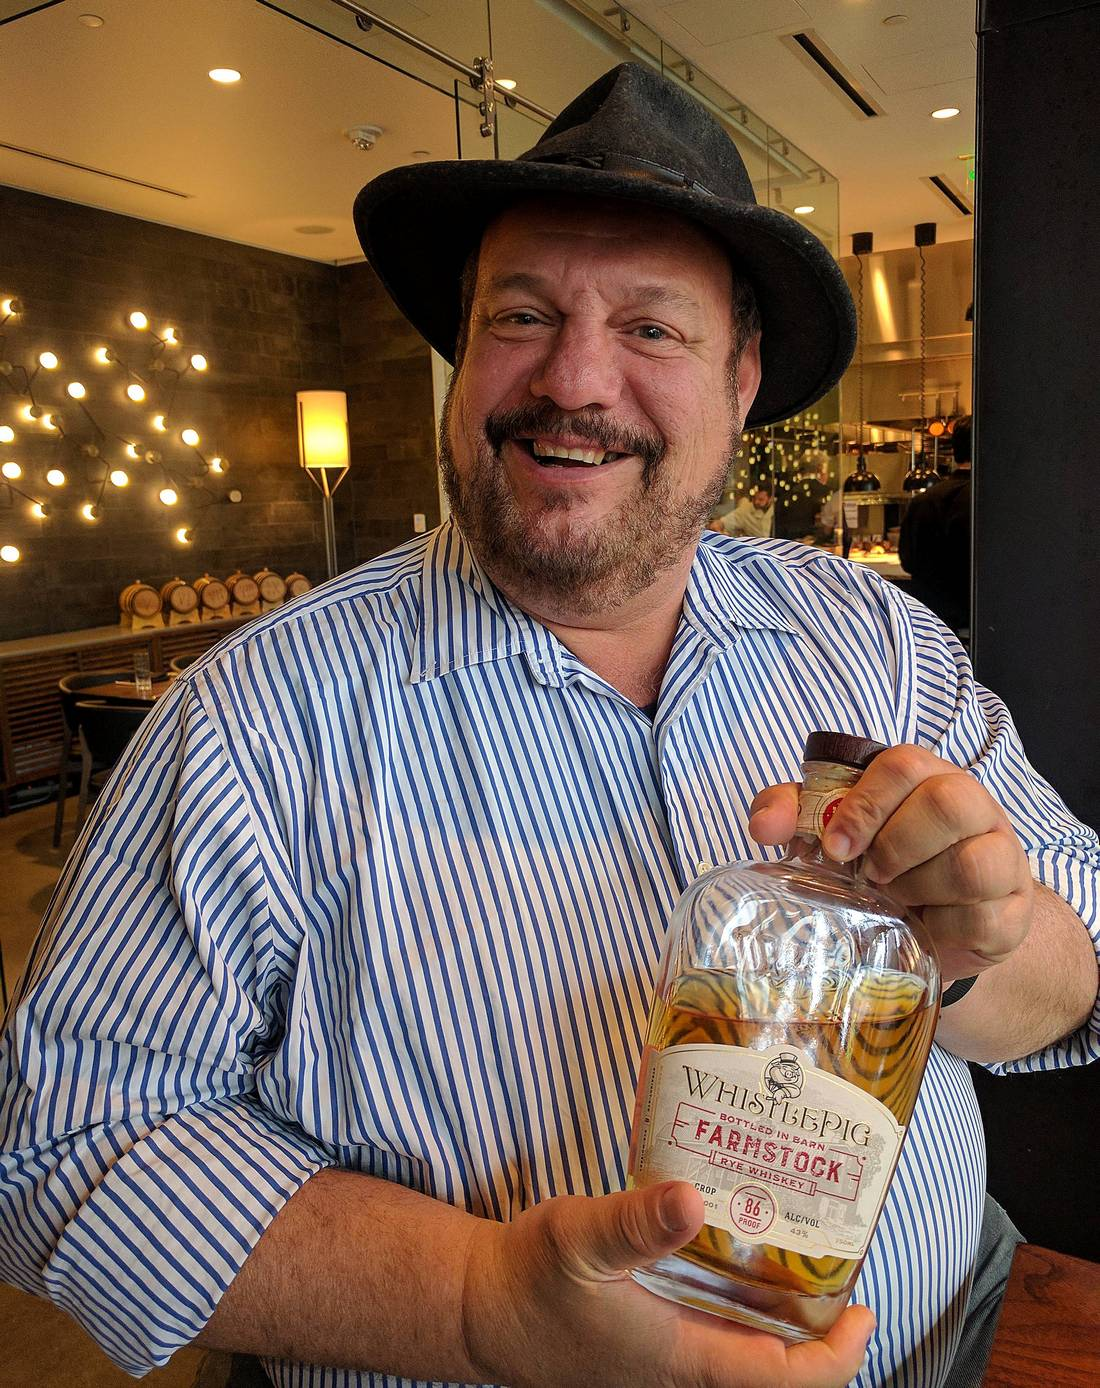 Dave Pickerell of WhistlePig Rye